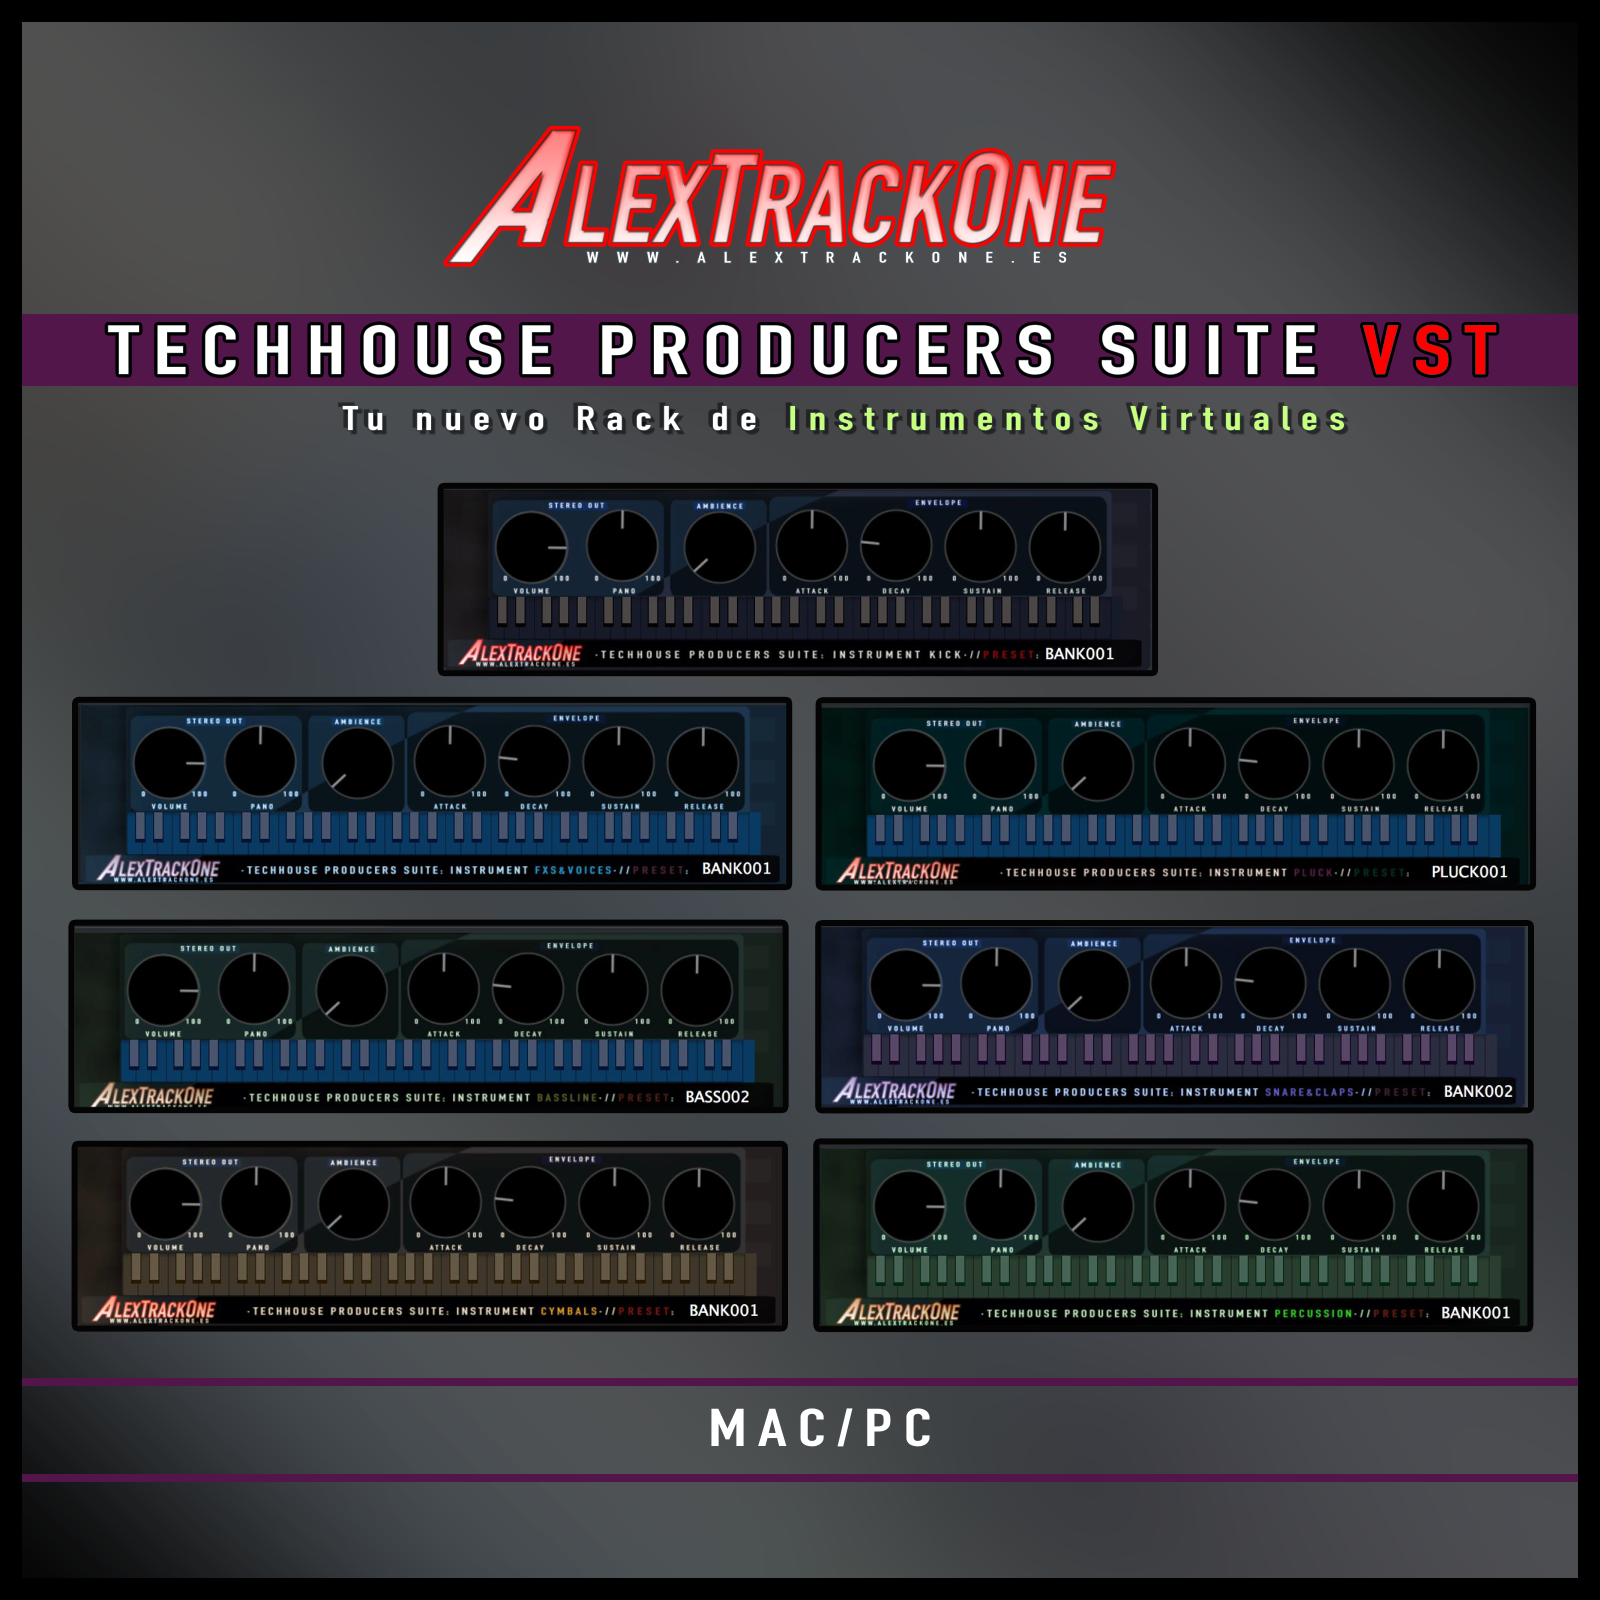 techhouse producers suite vst by alextrakone COVER 2 1600x.png